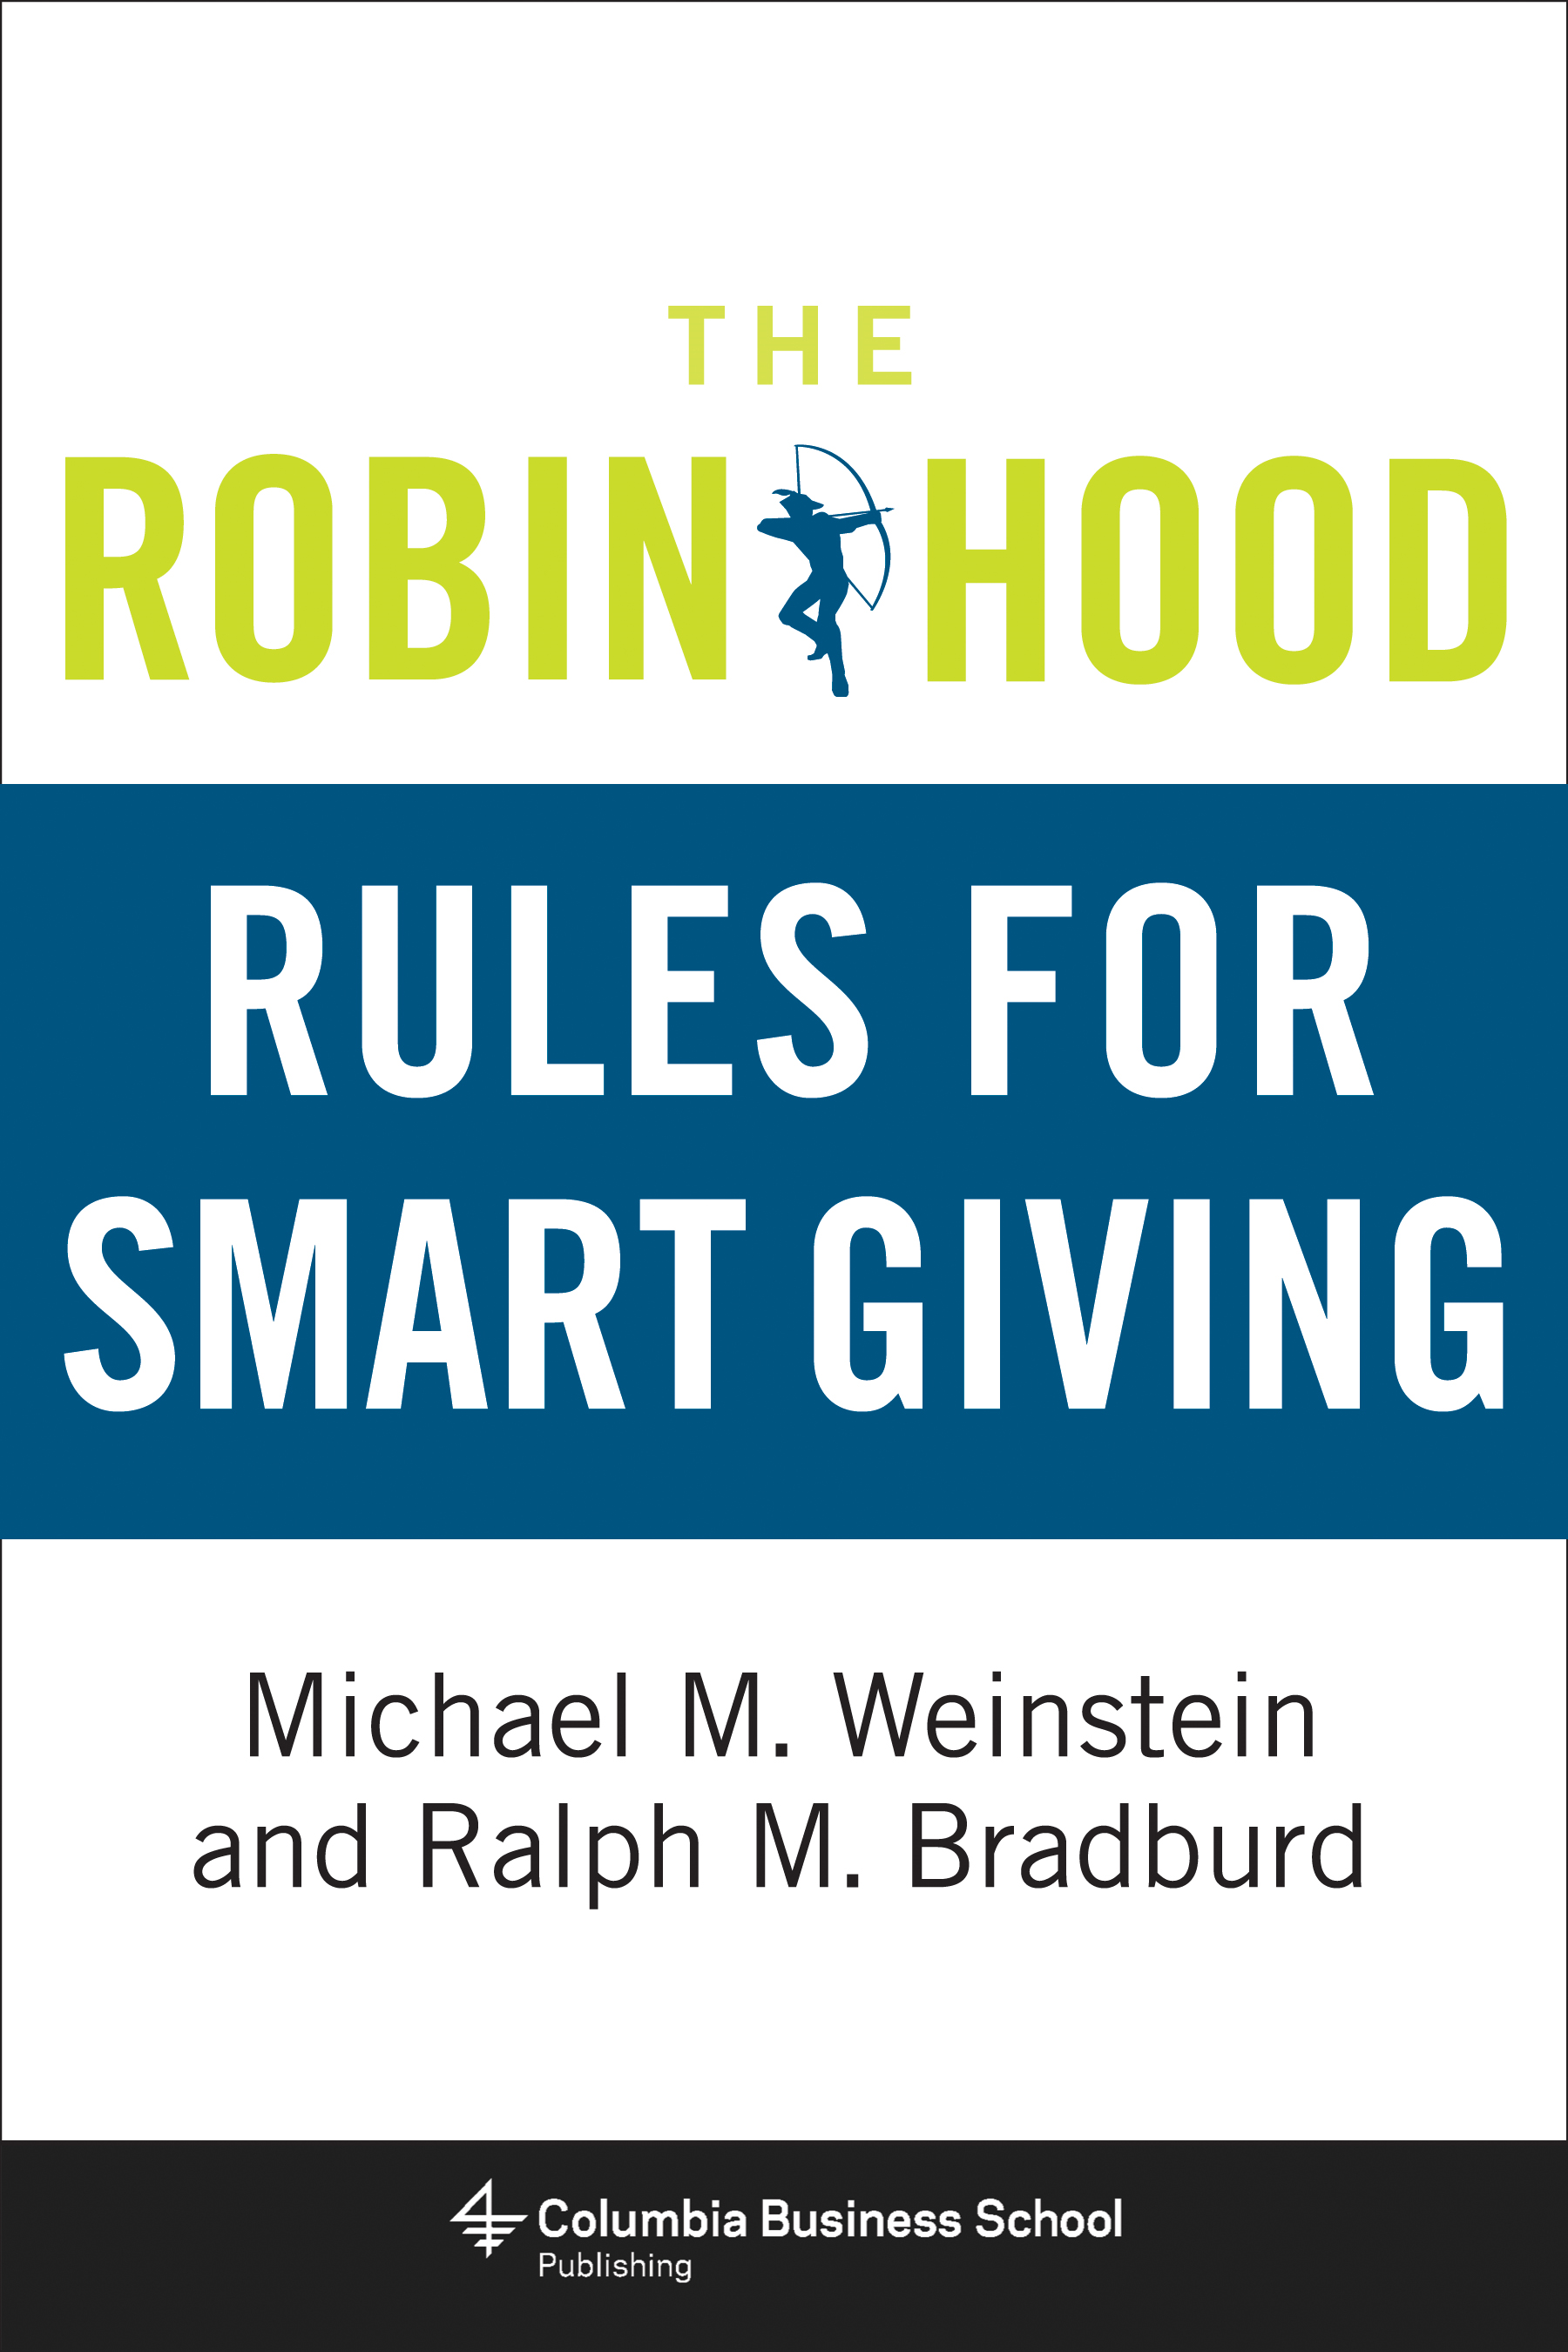 The Robin Hood Rules for Smart Giving